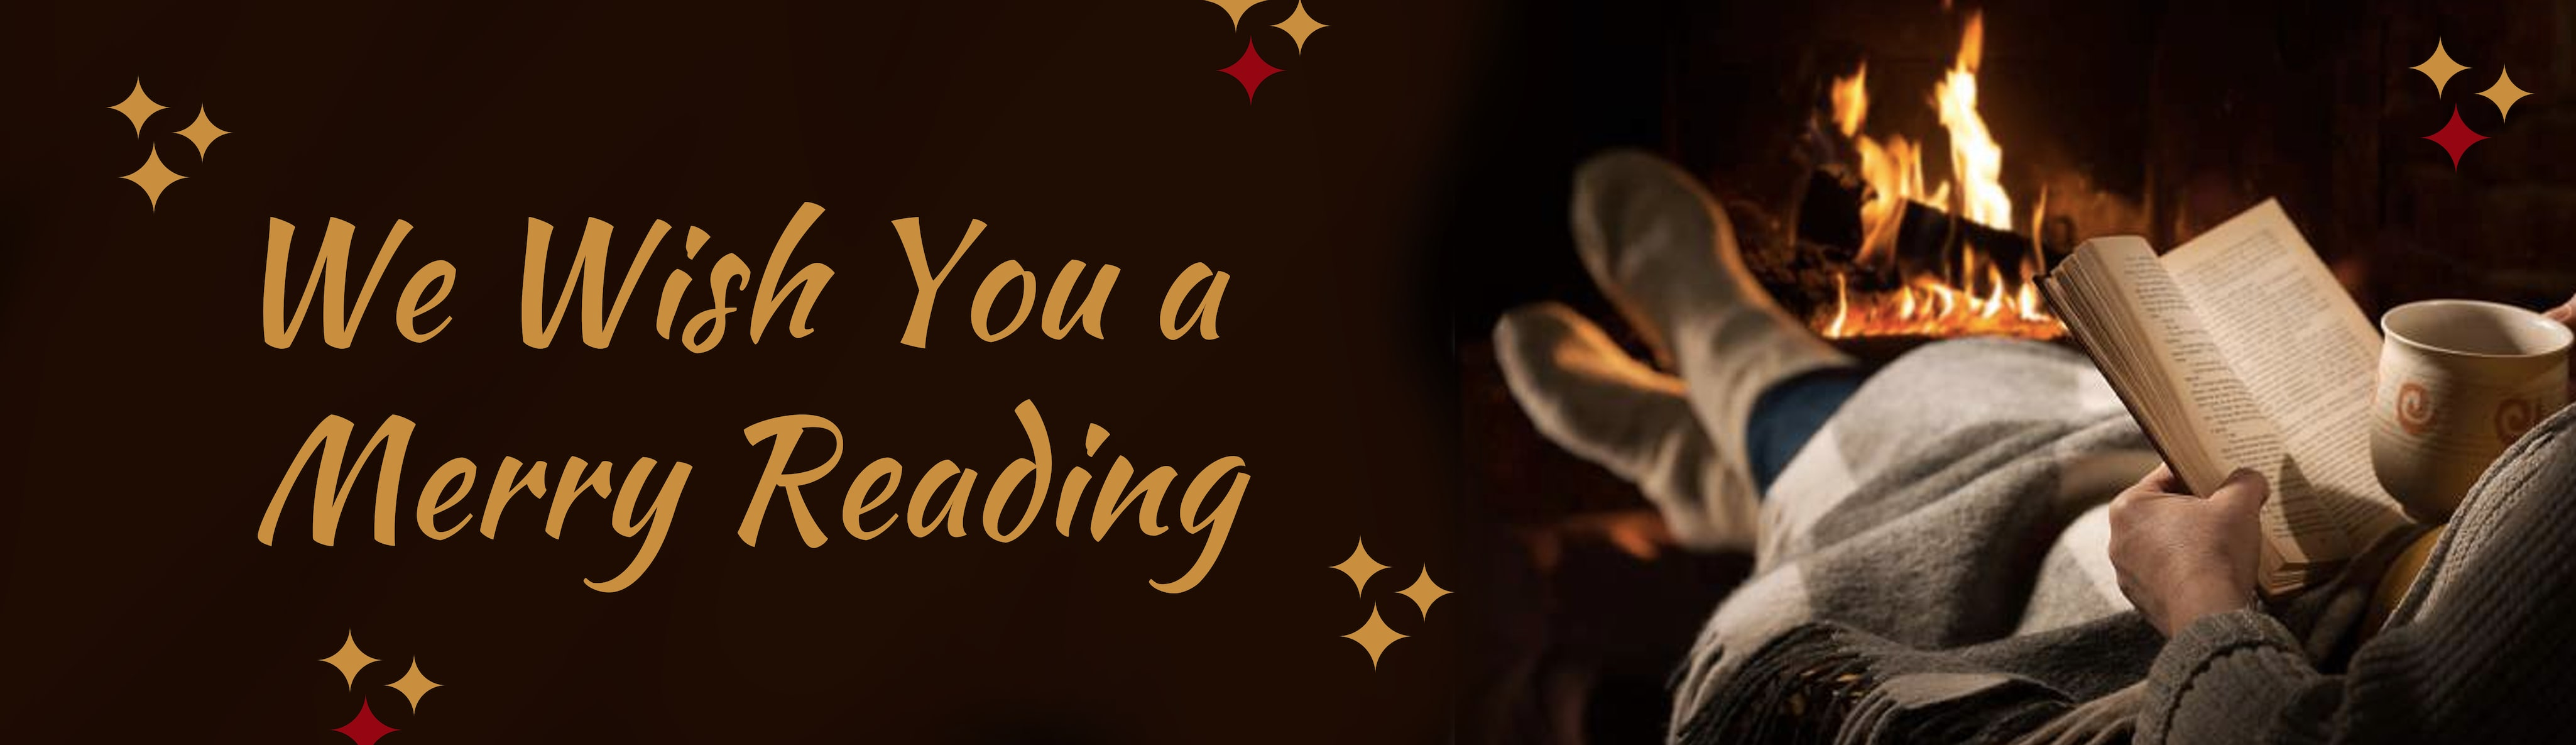 We Wish You a Merry Reading